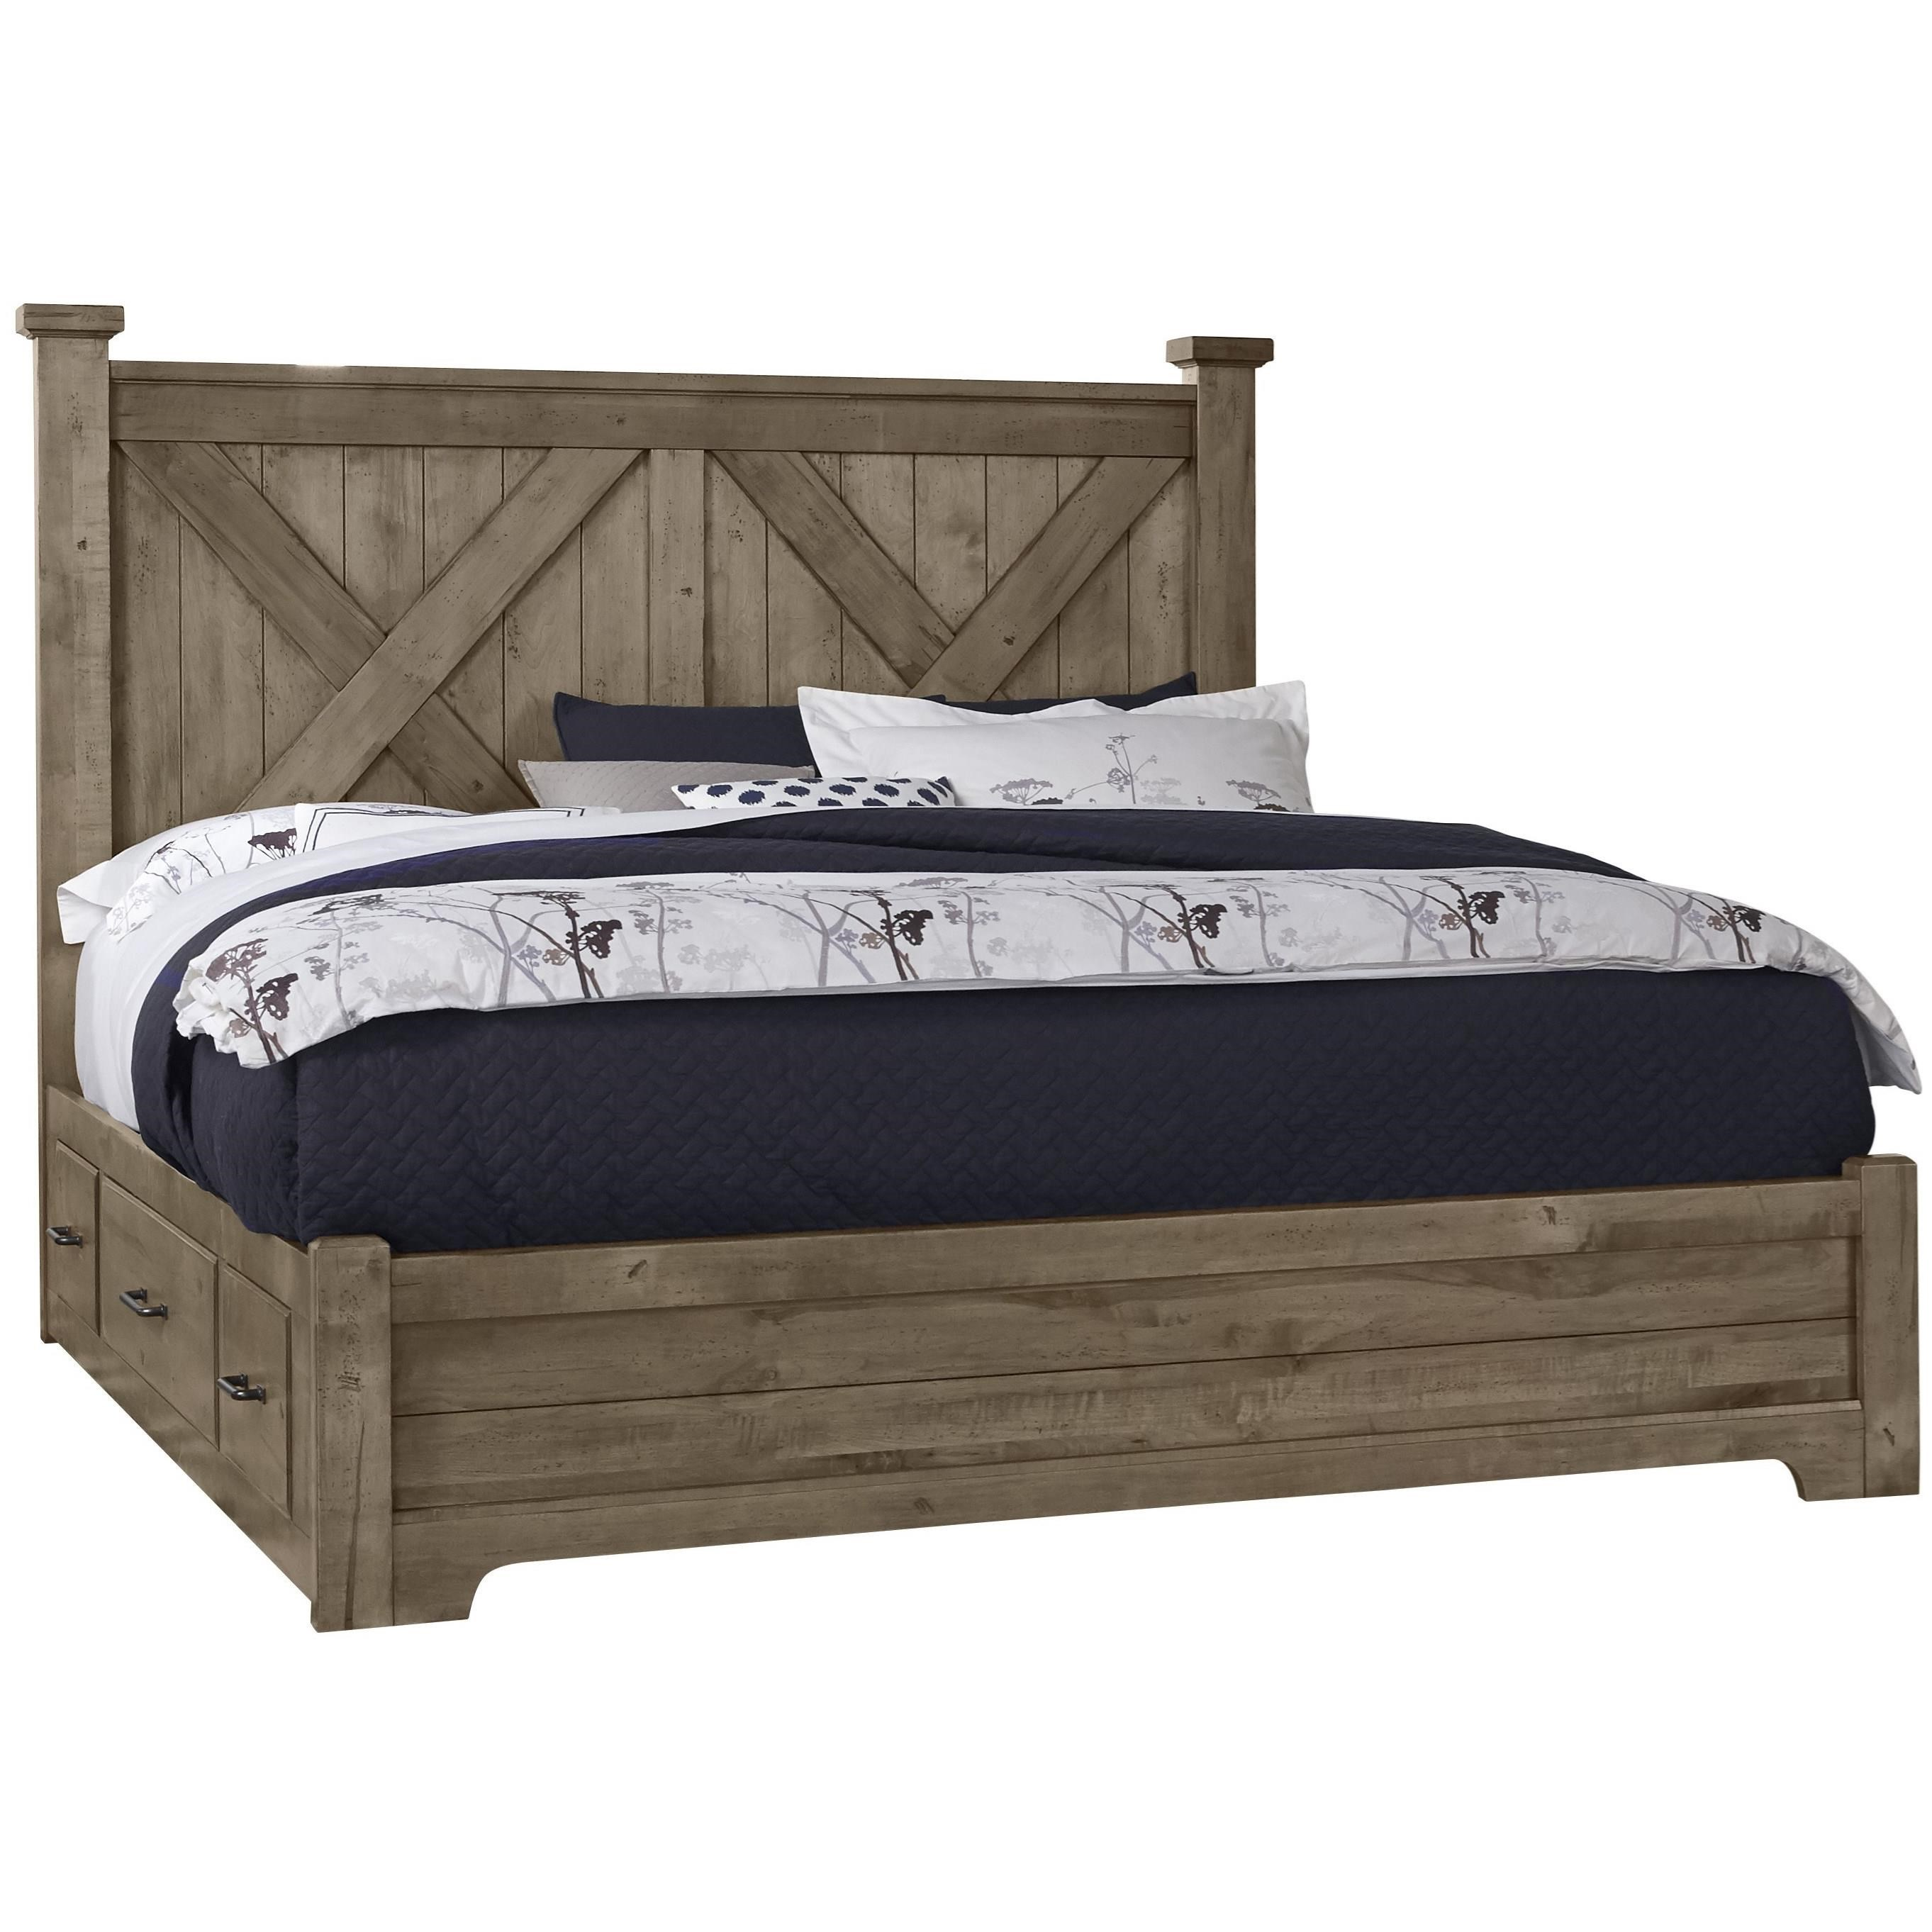 Cool Rustic Queen X Bed with Side Storage by Artisan & Post at Northeast Factory Direct